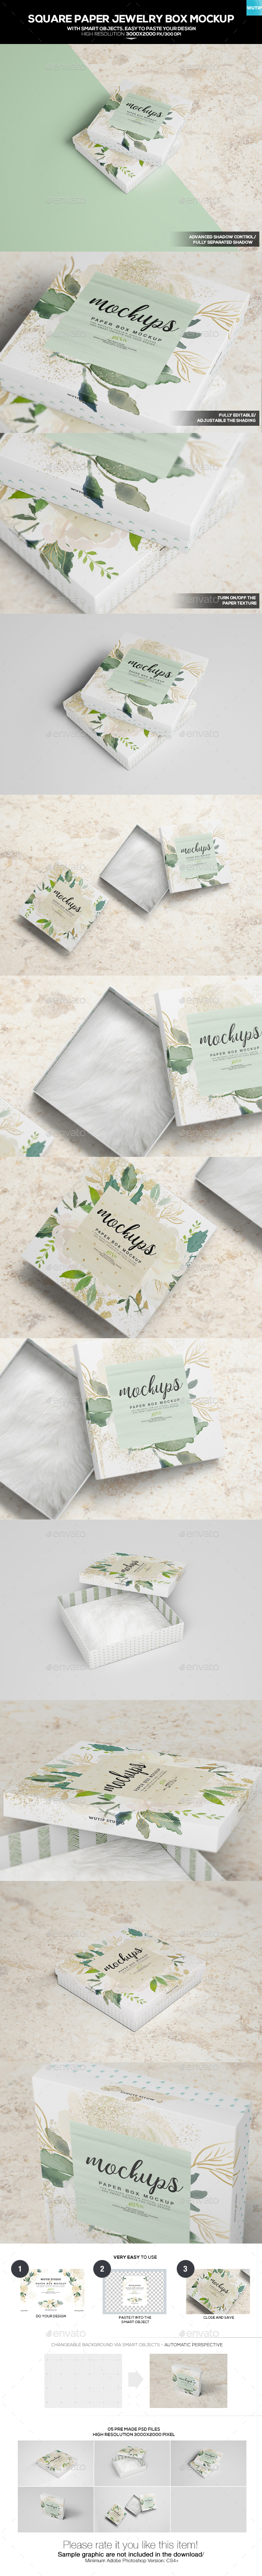 Square Paper Jewellery Box Mockup - Miscellaneous Packaging